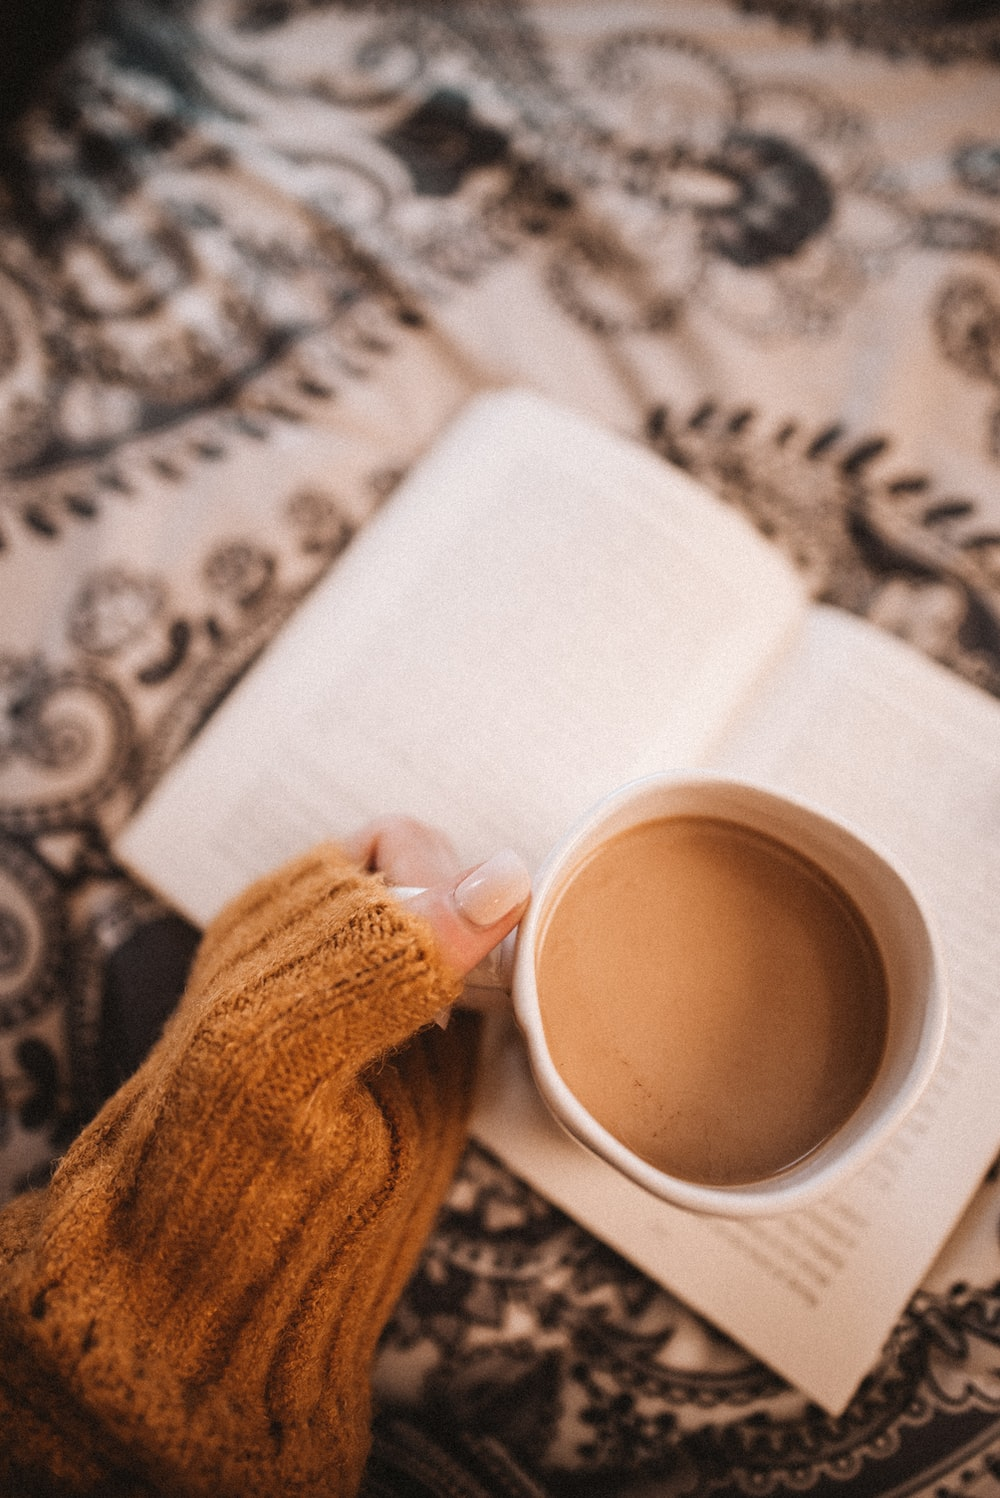 person holding white ceramic mug with brown liquid